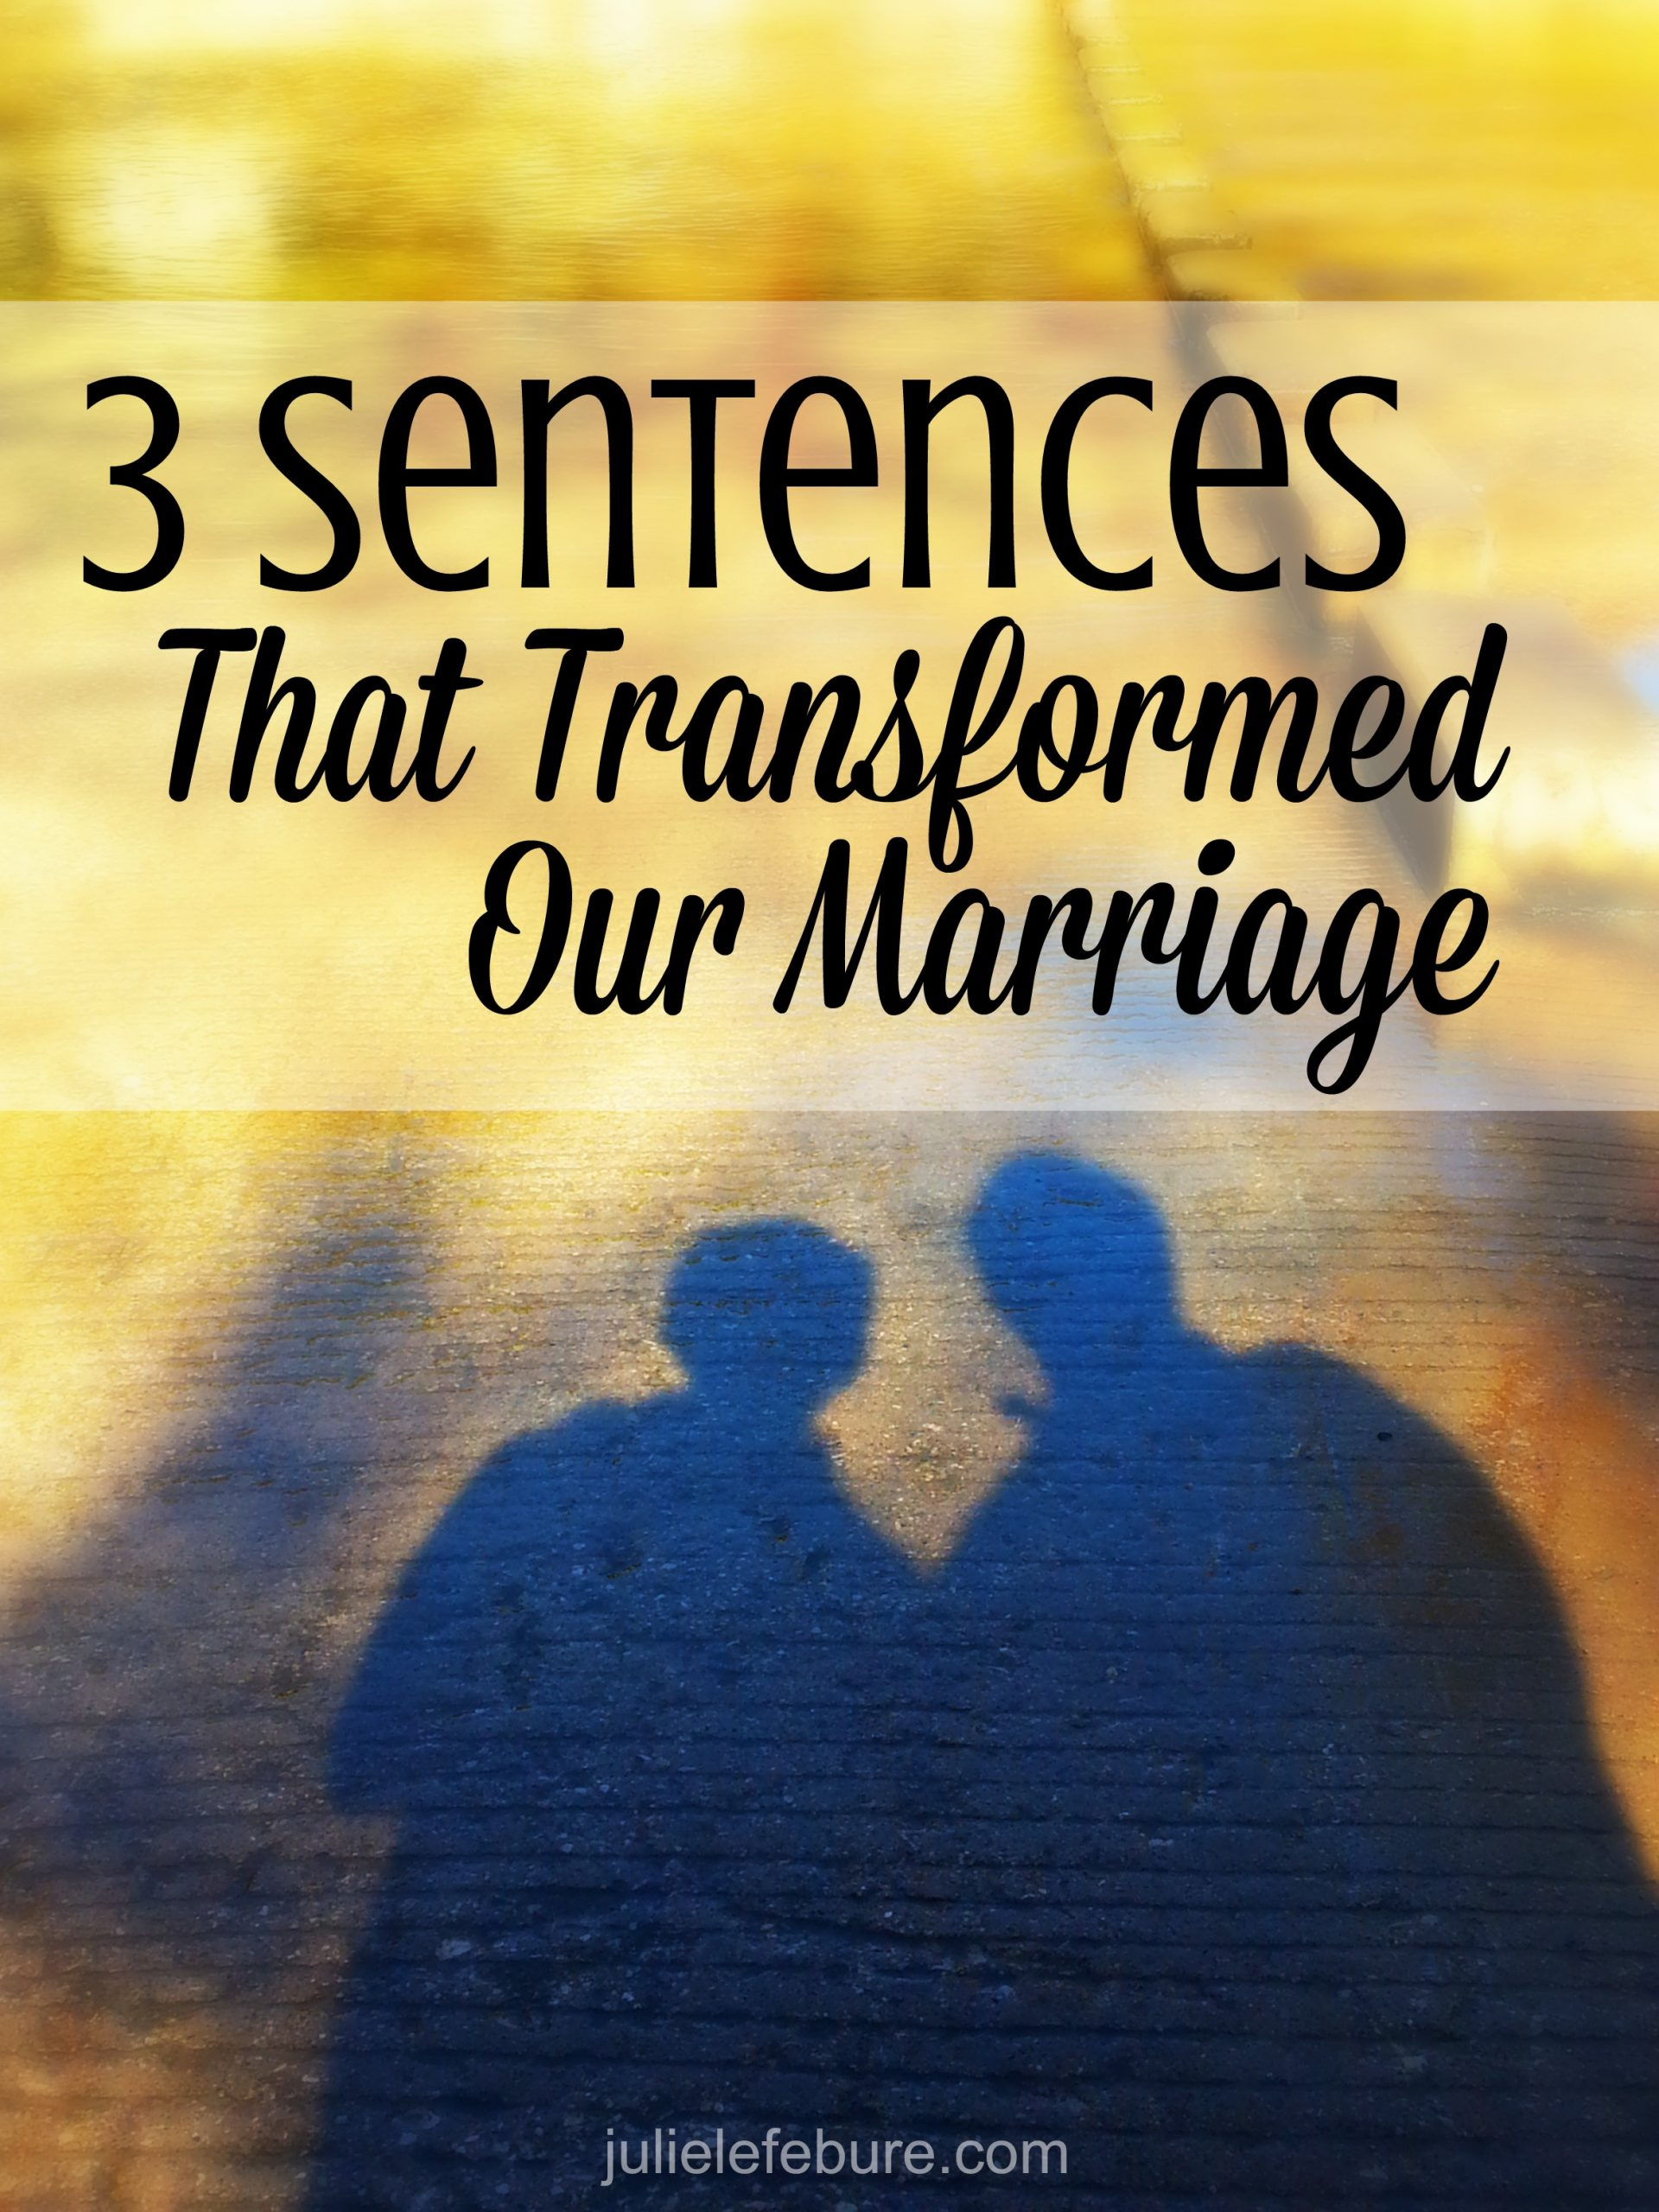 3 Sentences That Transformed Our Marriage